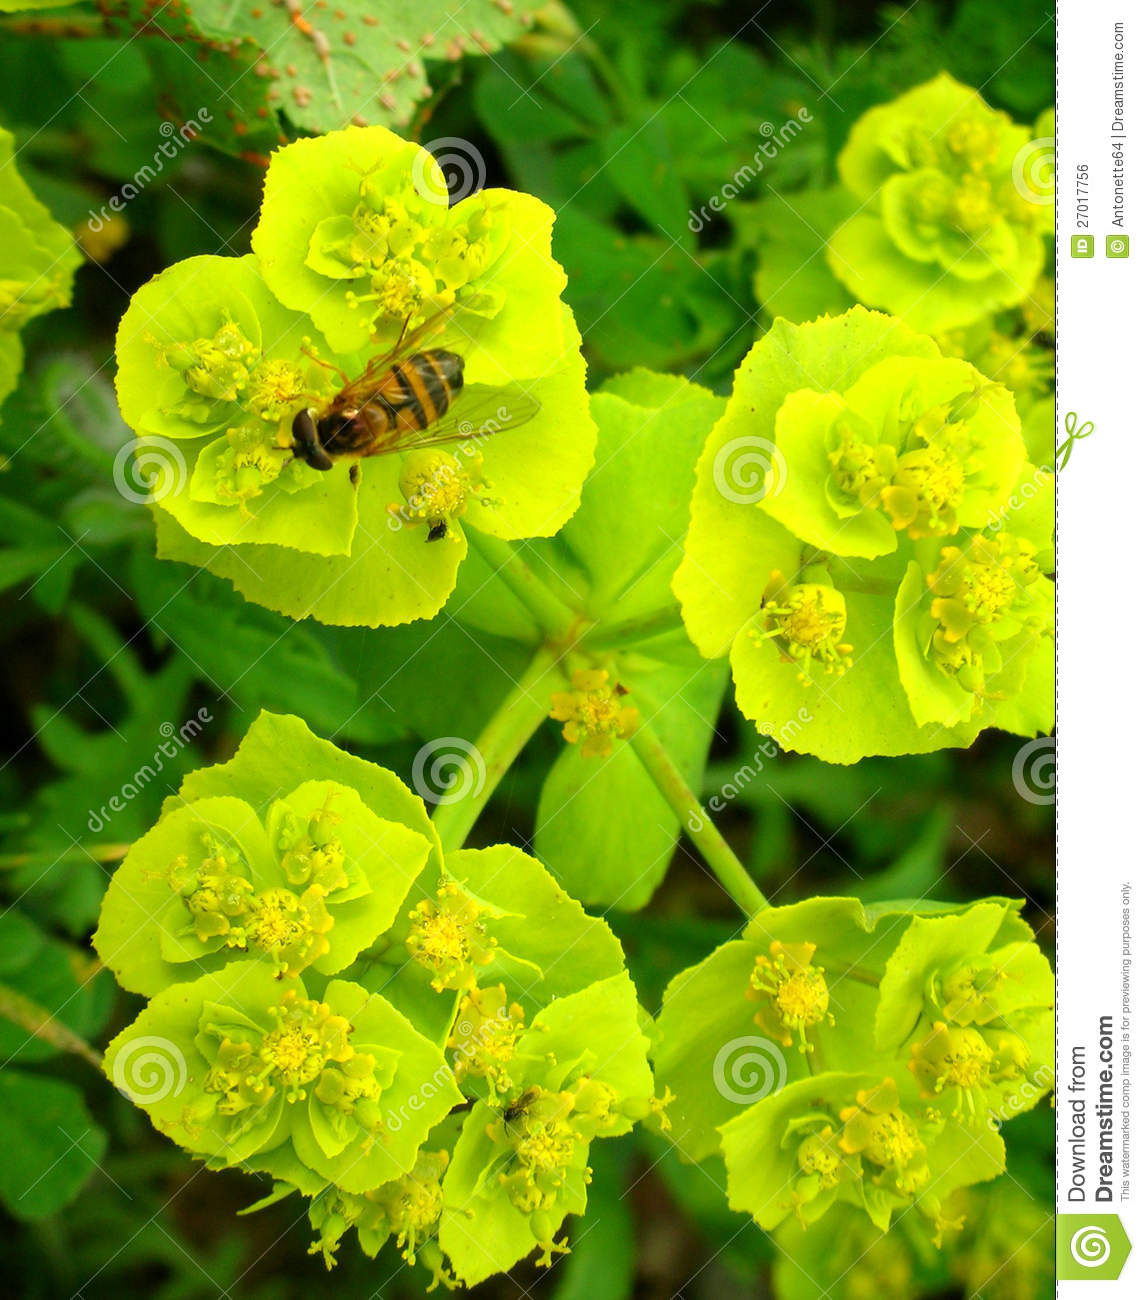 Wasp on yellowgreen flower stock photo image of yellowgreen 27017756 wasp on yellowgreen flower mightylinksfo